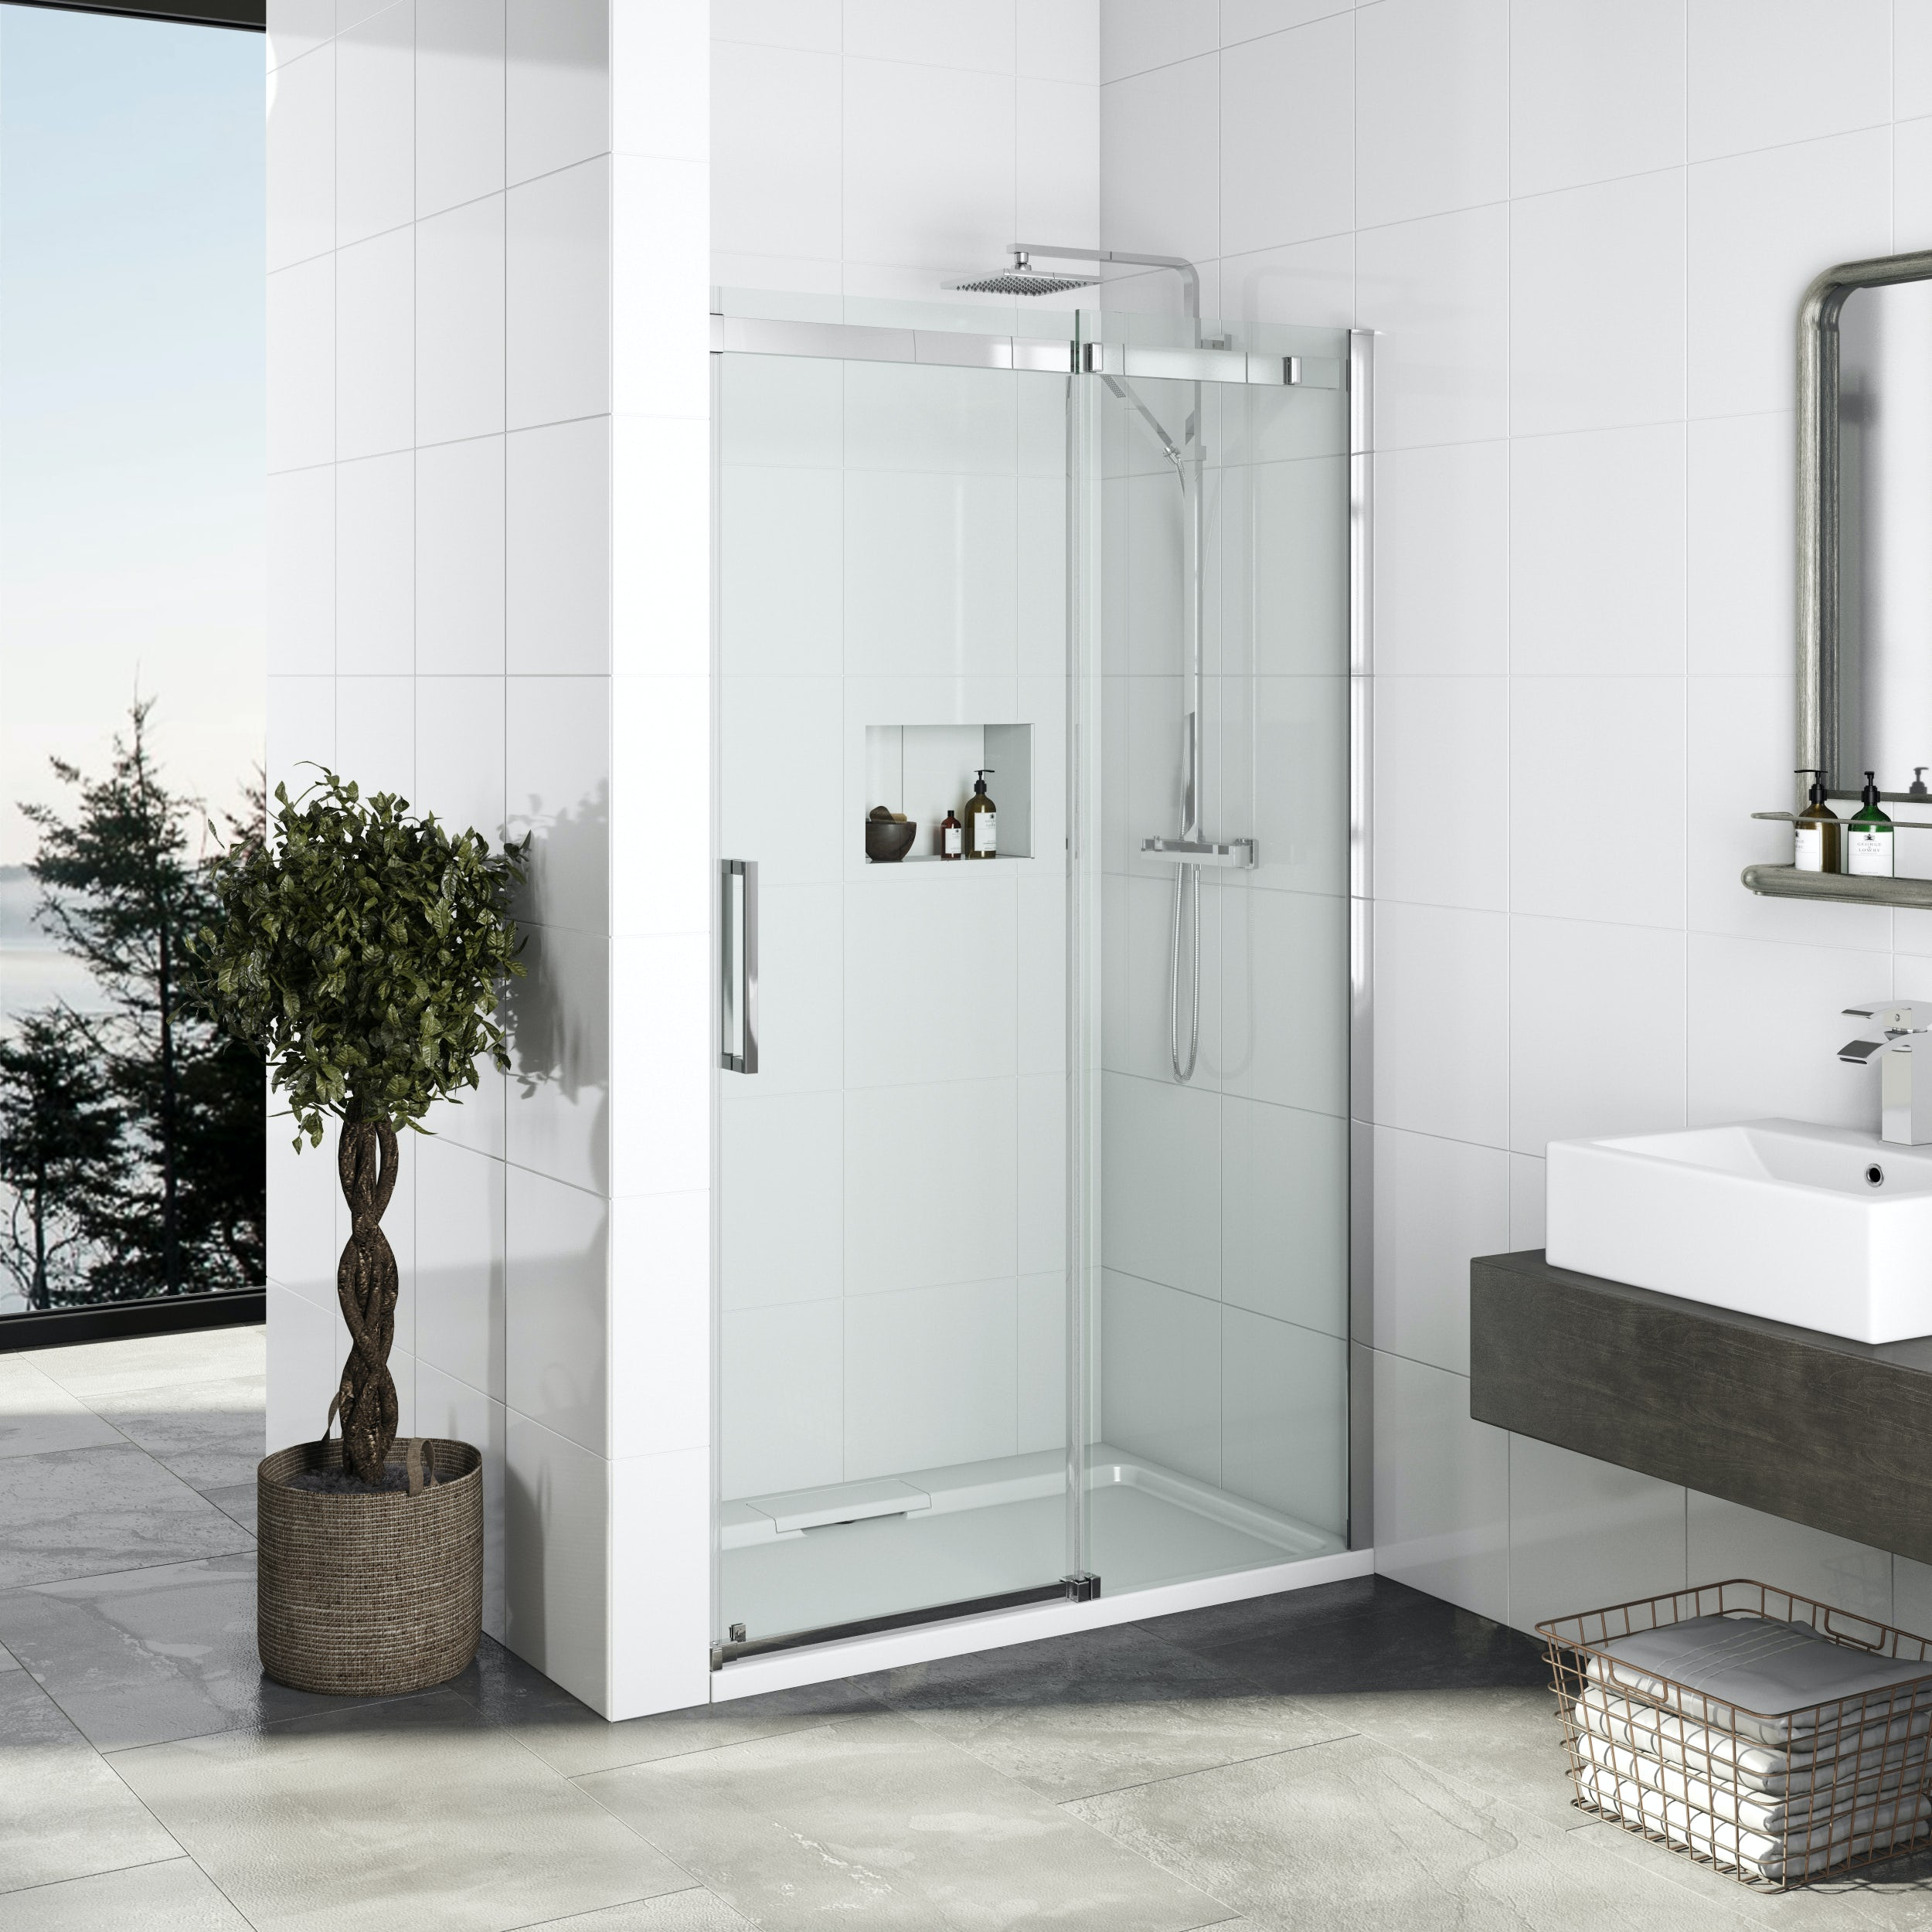 Merlyn 8 series sliding door amp inline panel - Priced To Clear Elite 10mm Frameless Sliding Door 1200mm